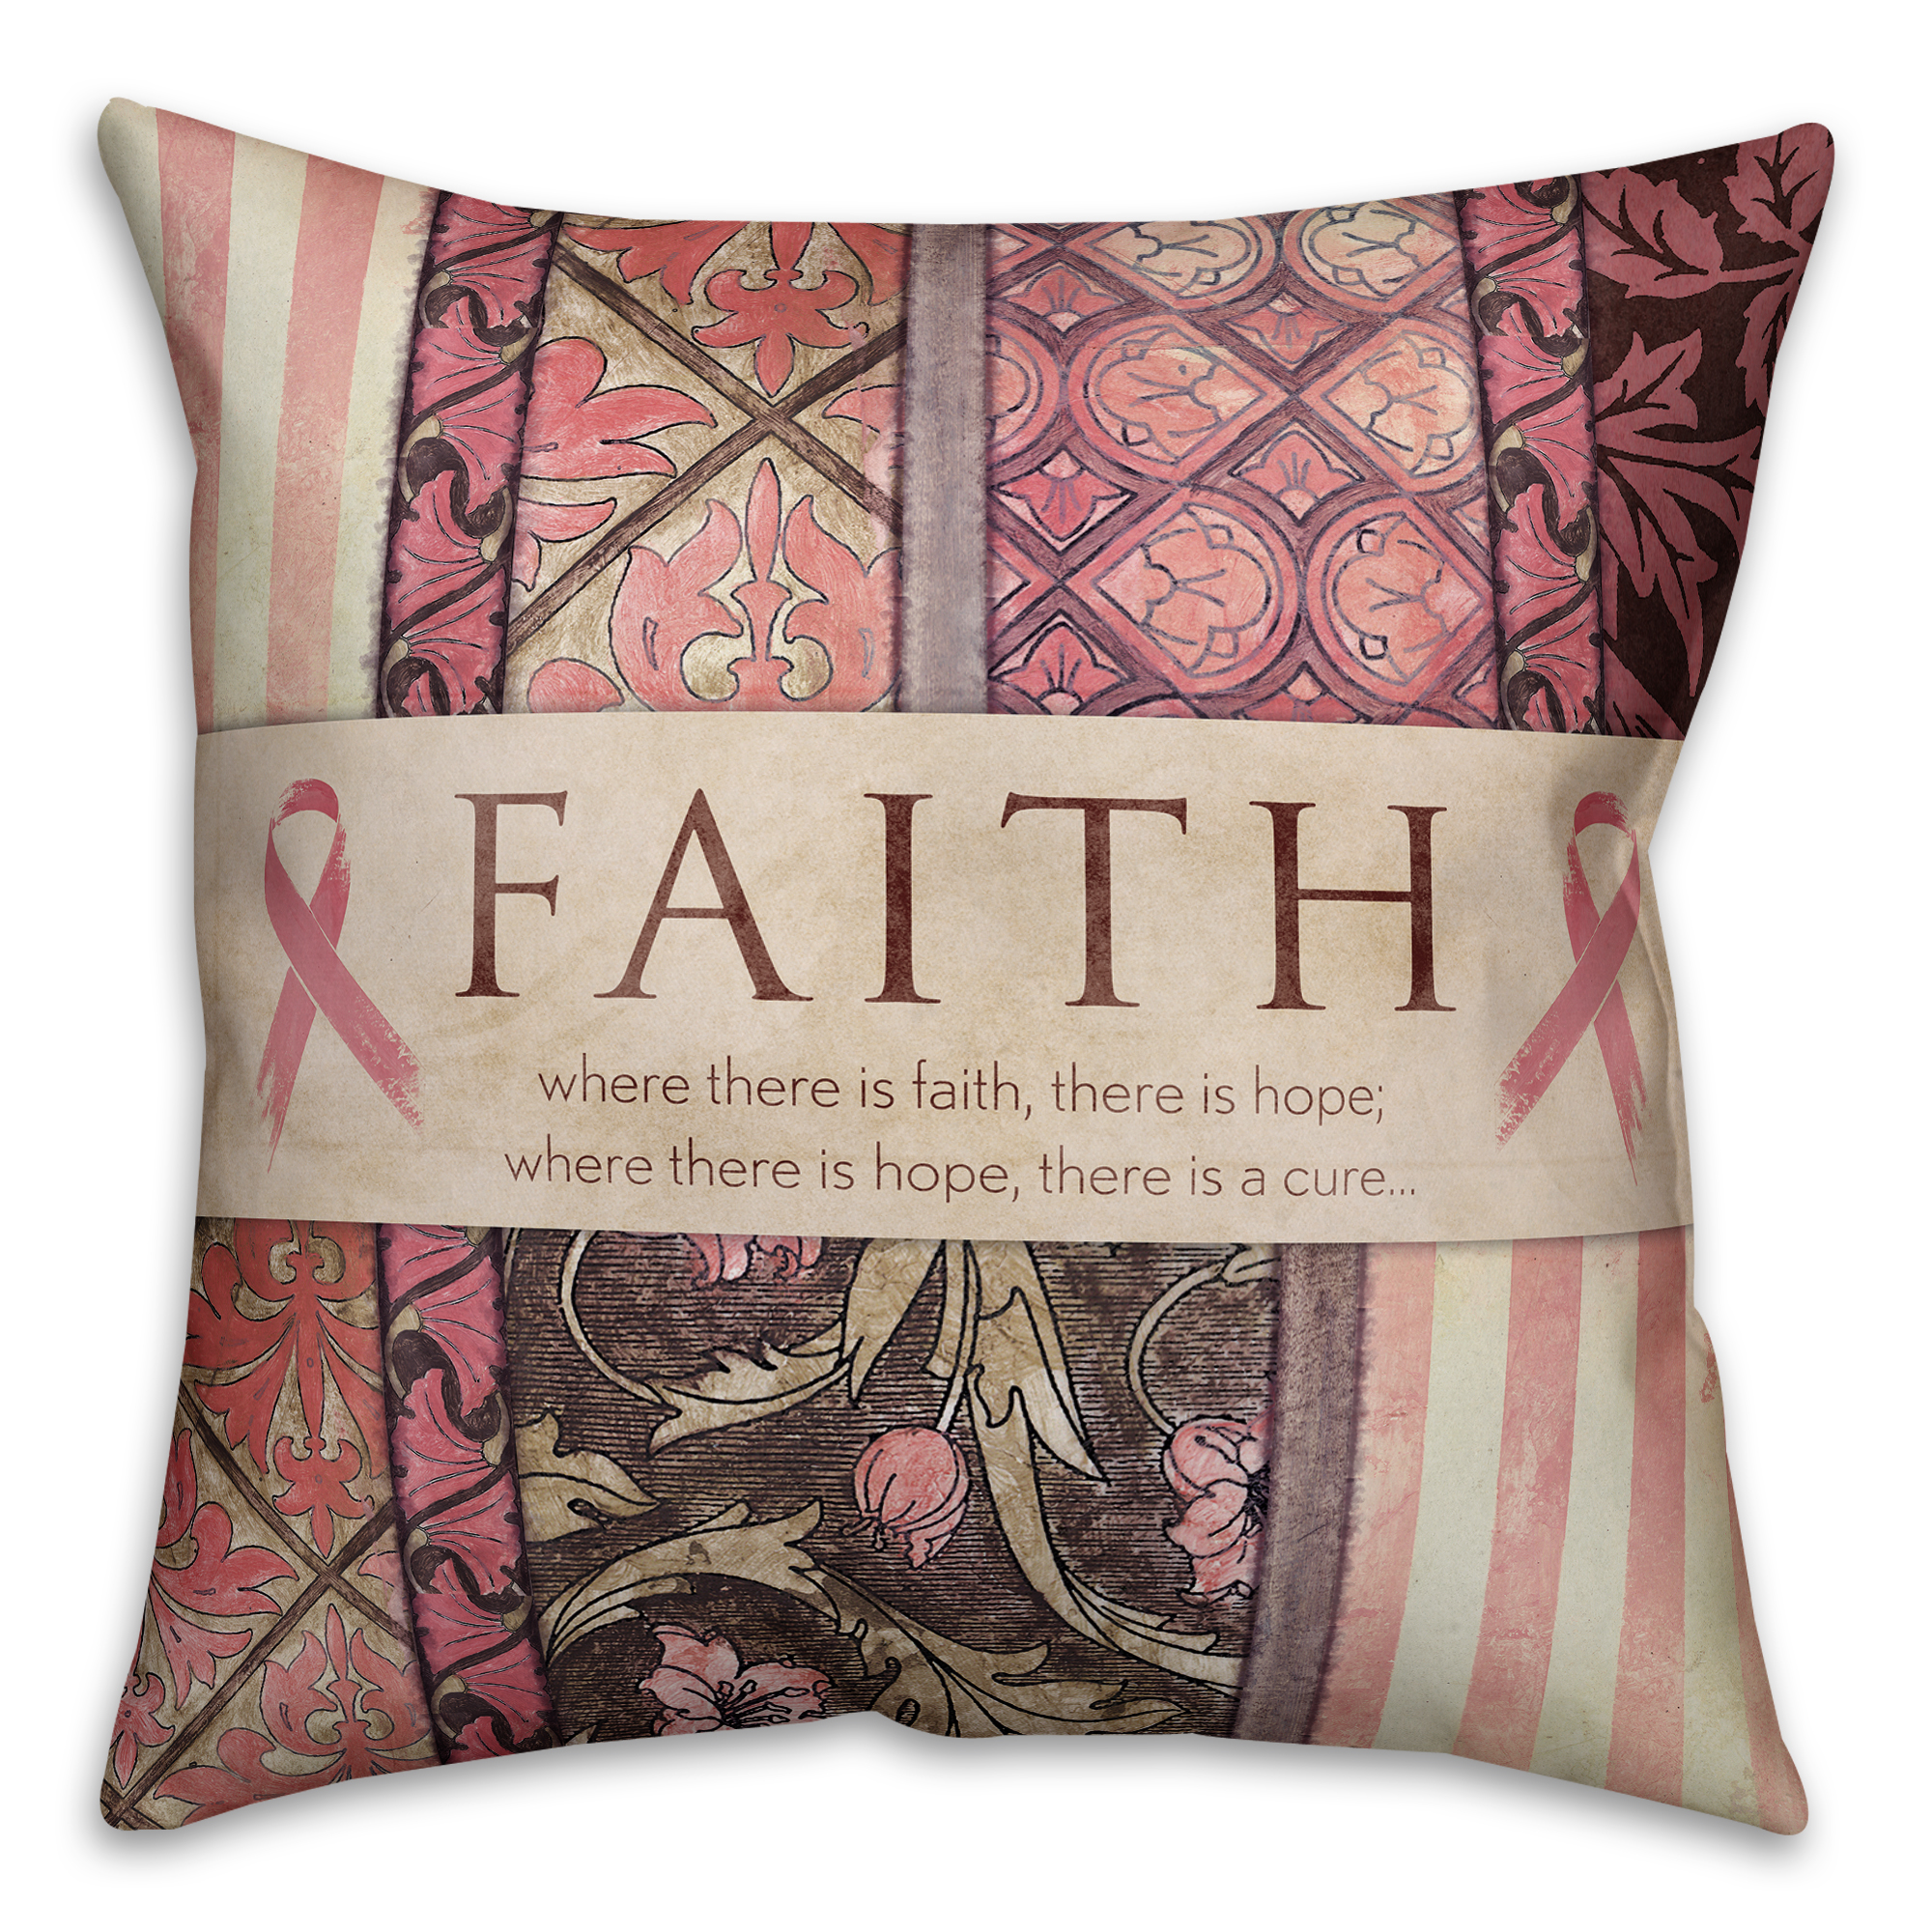 Faith Breast Cancer Awareness 18x18 Spun Poly Pillow